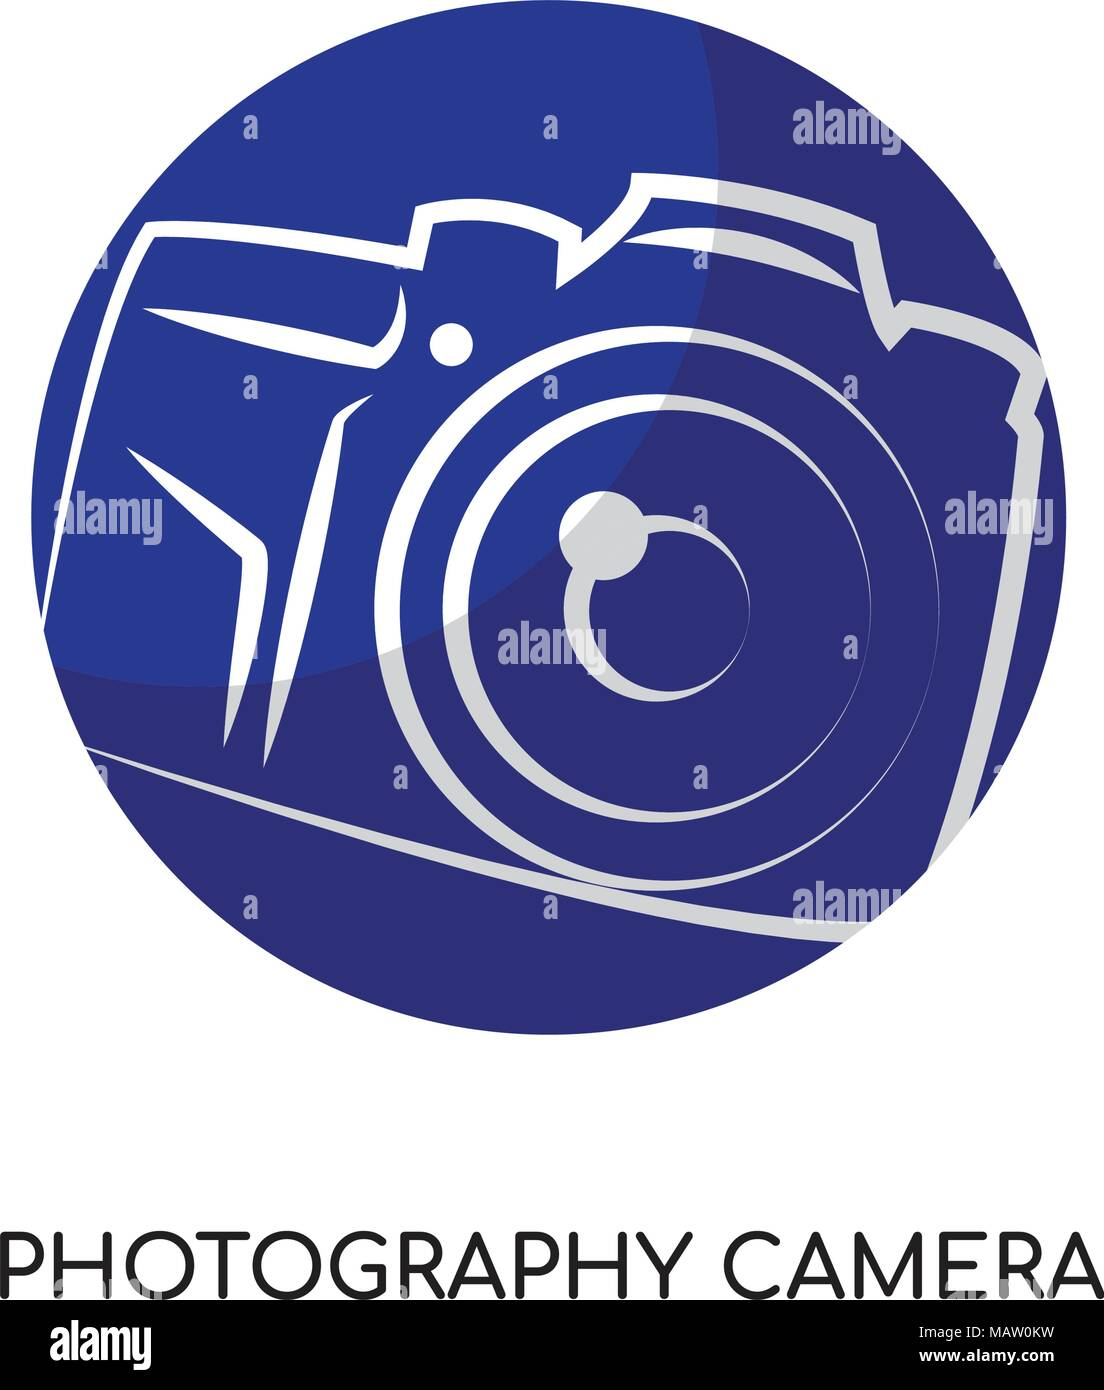 Photography Camera Logo Png Isolated On White Background For Your Web Mobile And App Design Stock Vector Image Art Alamy